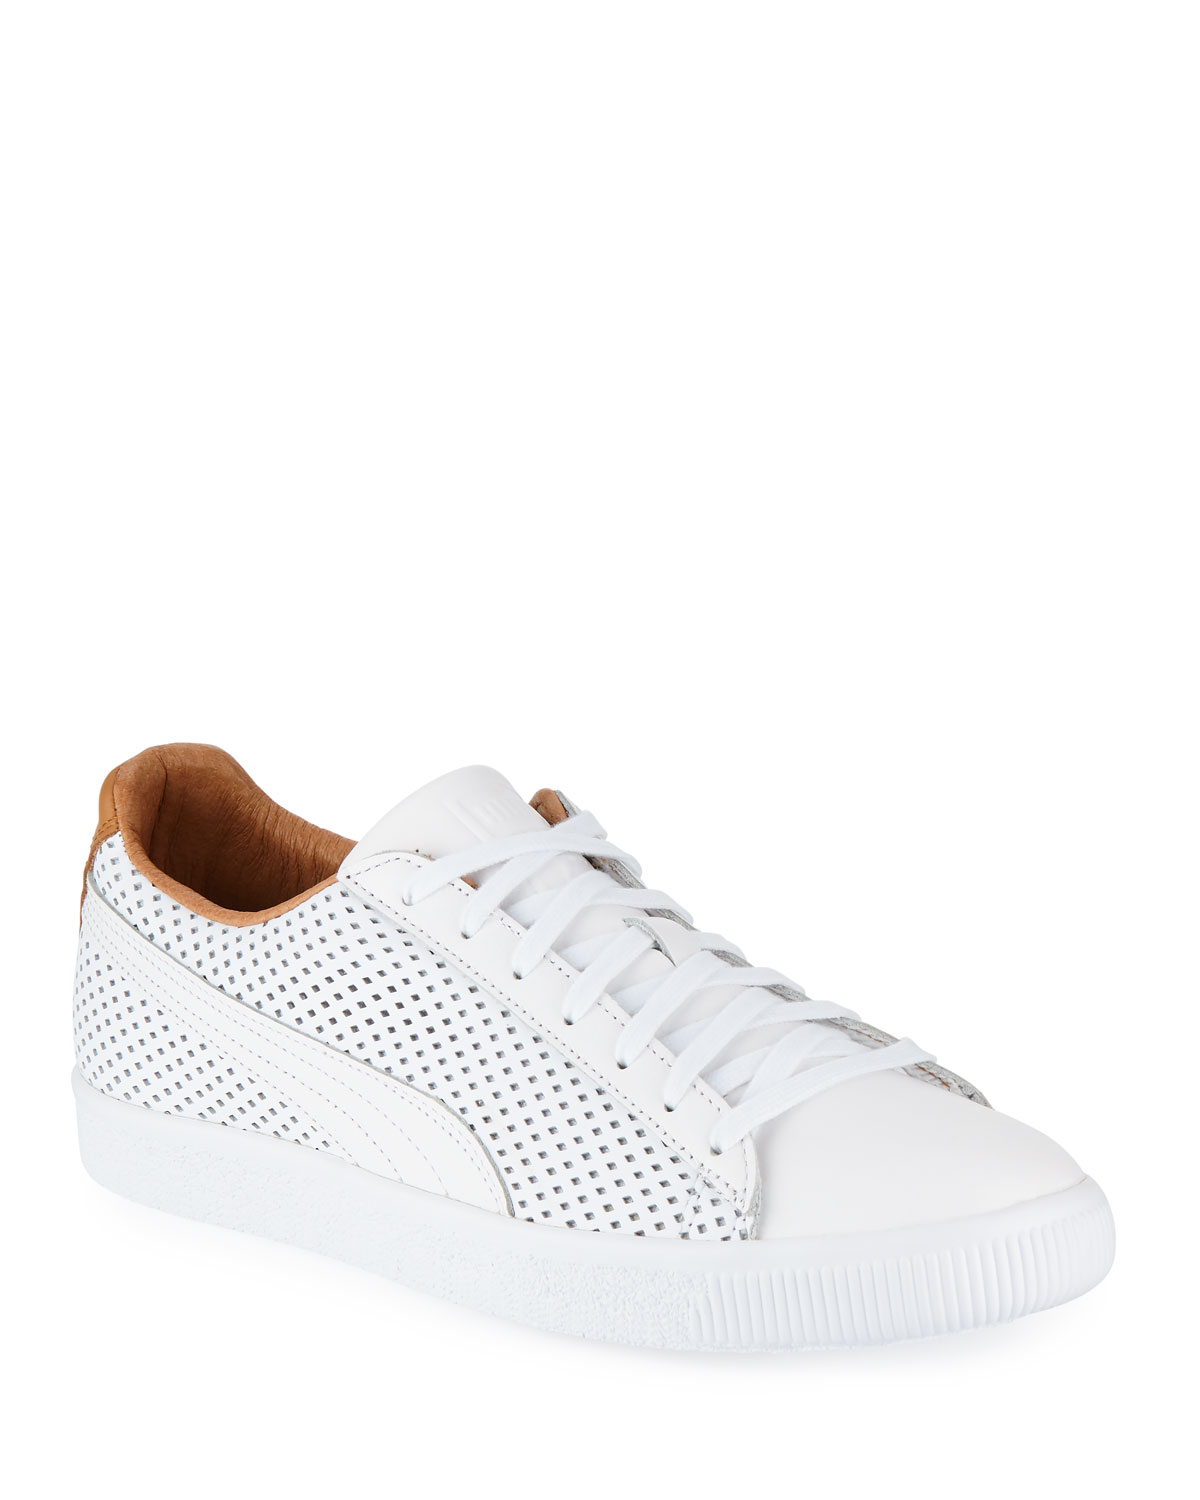 factory price 3a86c feccd Men's Clyde Perforated Leather Creeper Sneakers